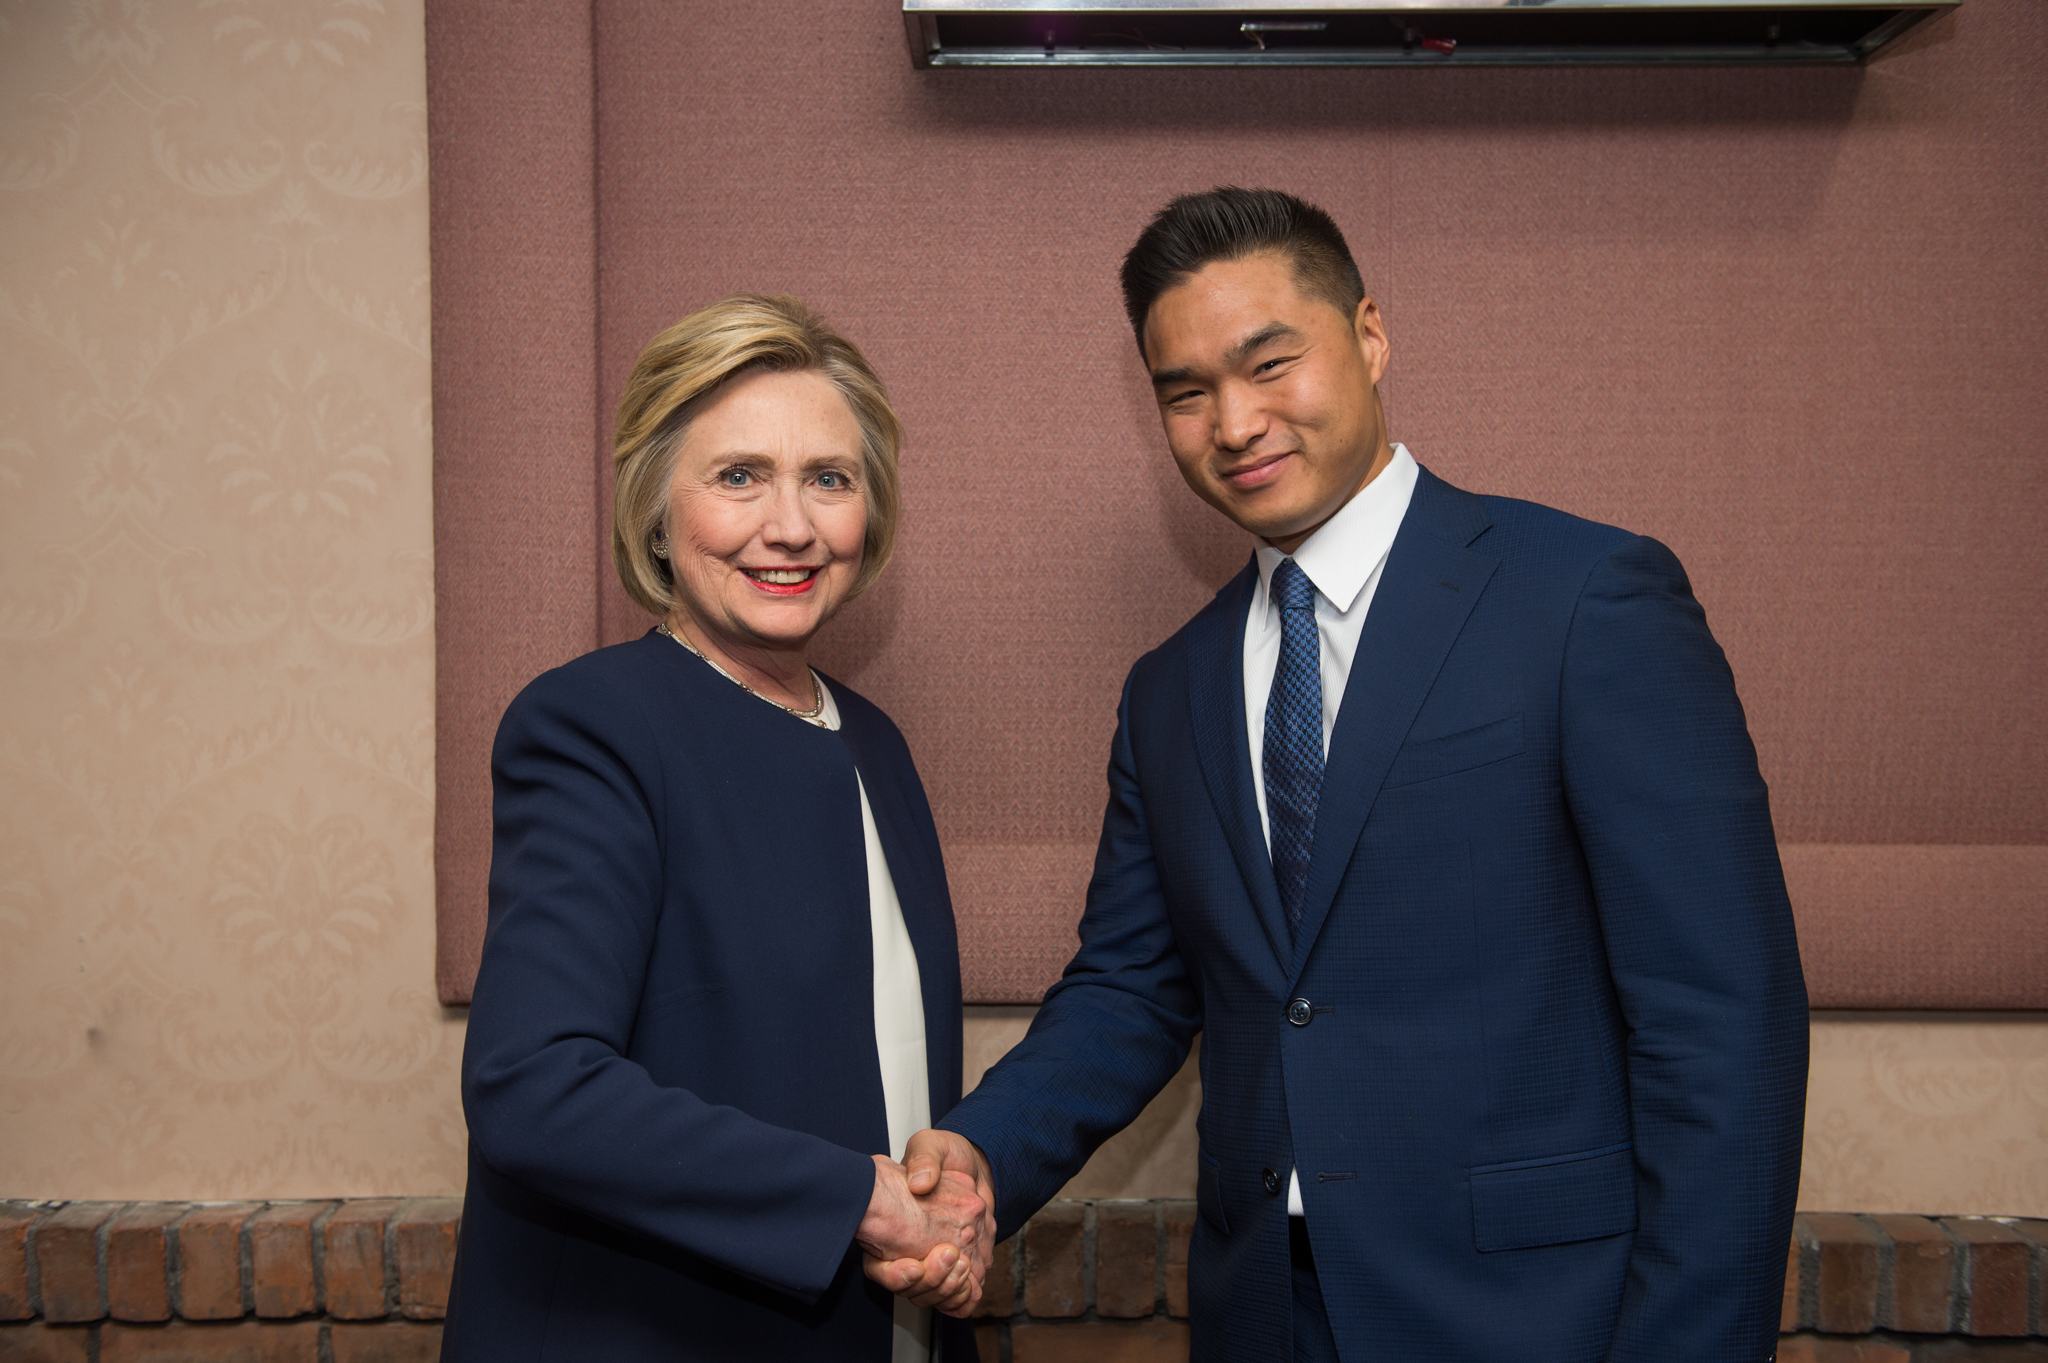 Mike Cheng with Hillary Clinton